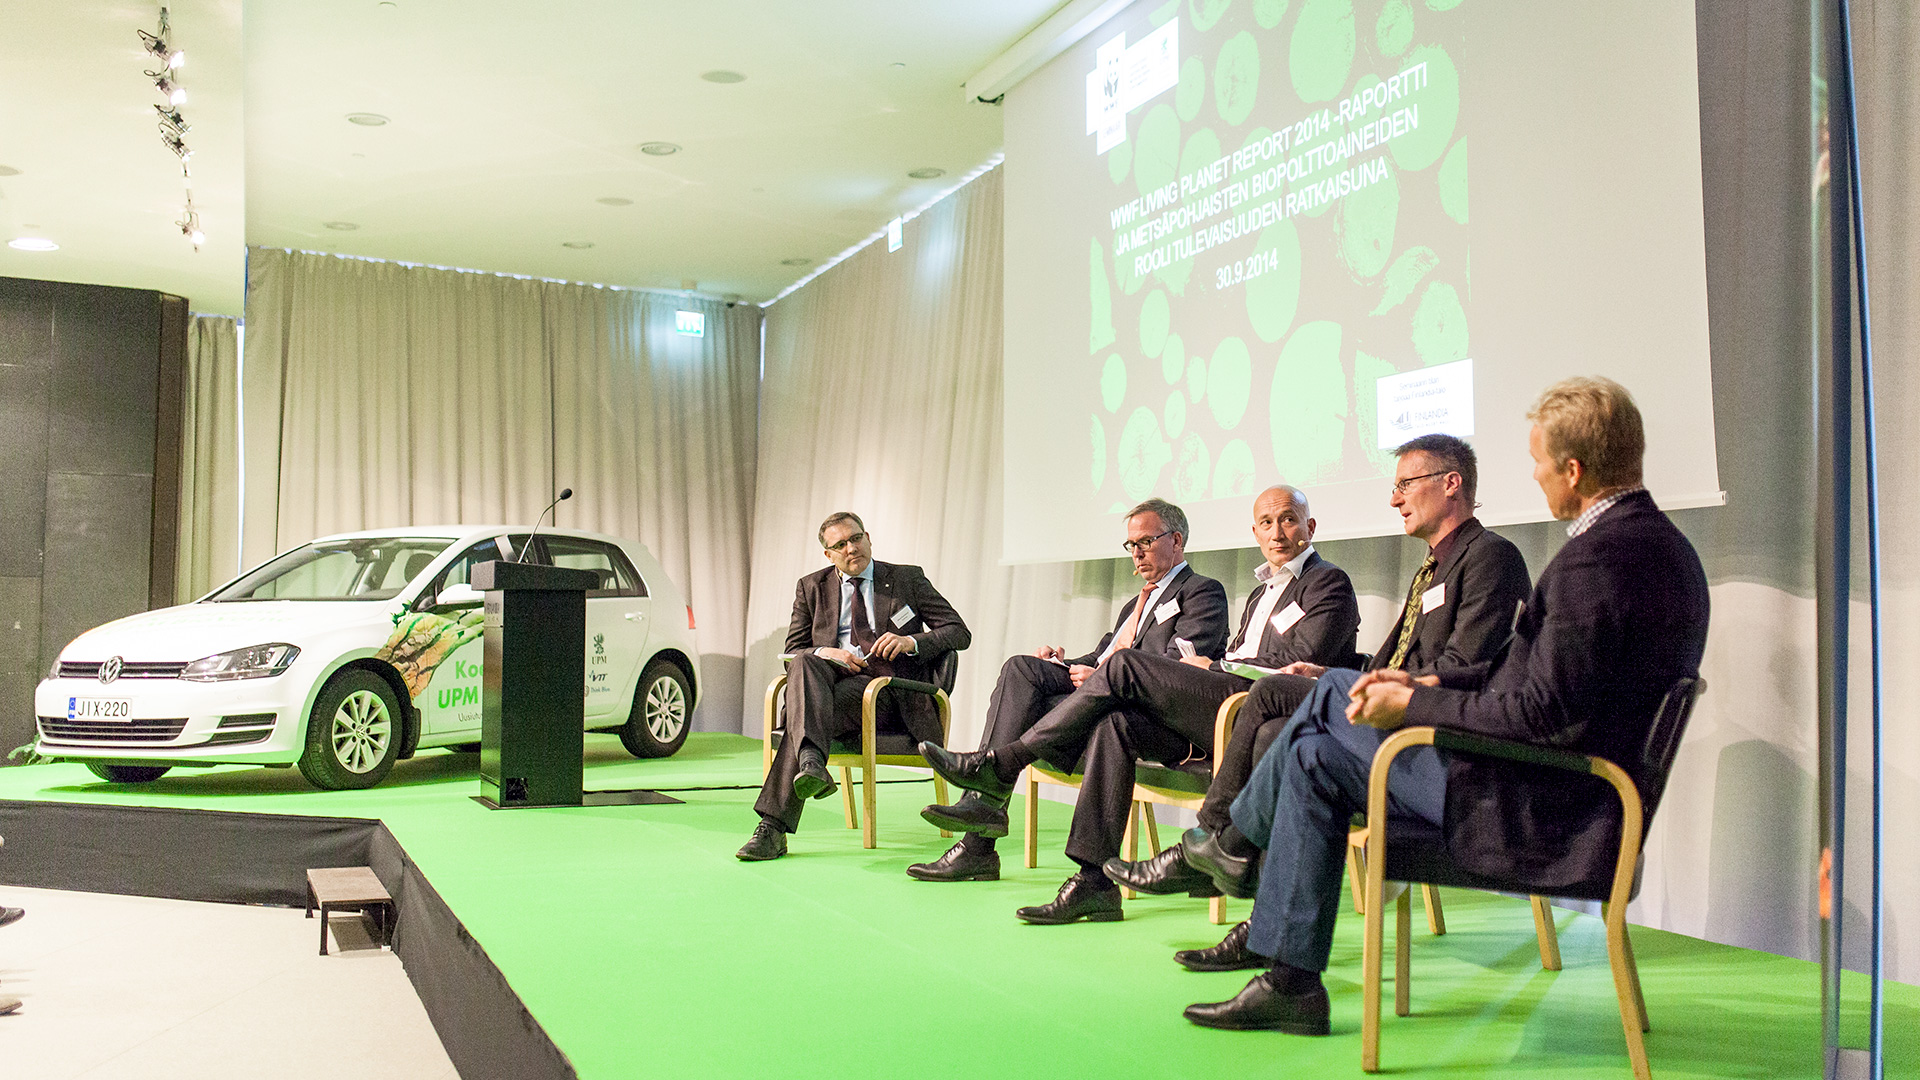 upm-biofuels-wwf-finland-event-october-2014.jpg